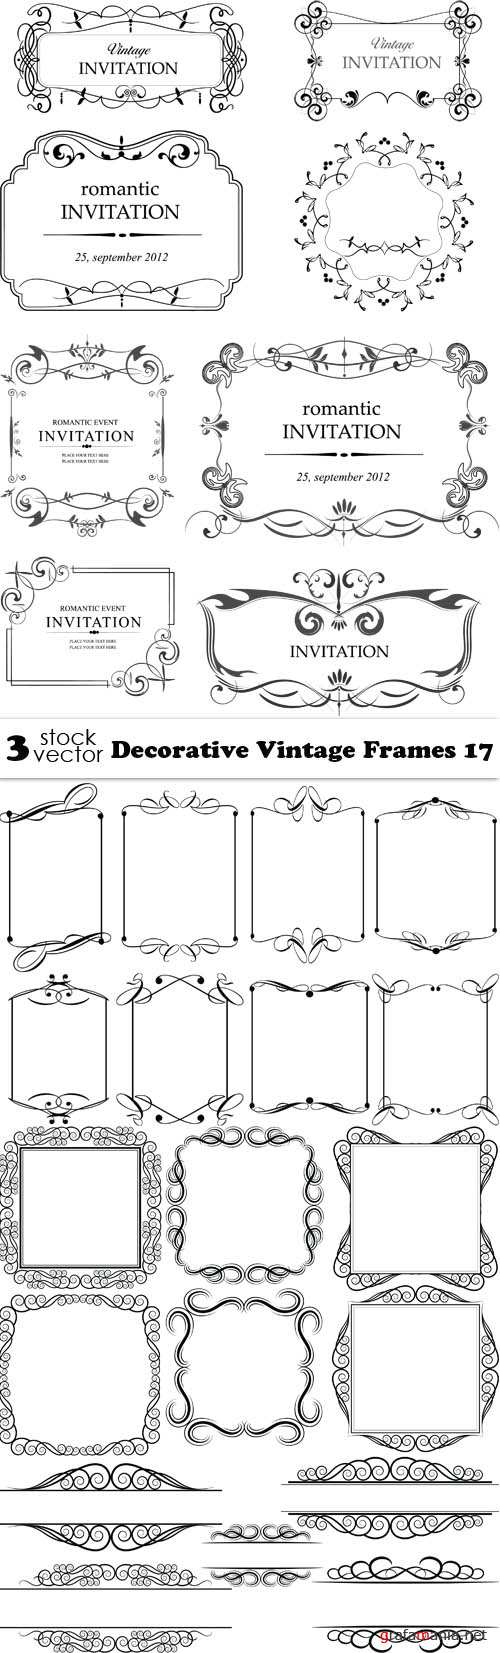 Vectors - Decorative Vintage Frames 17